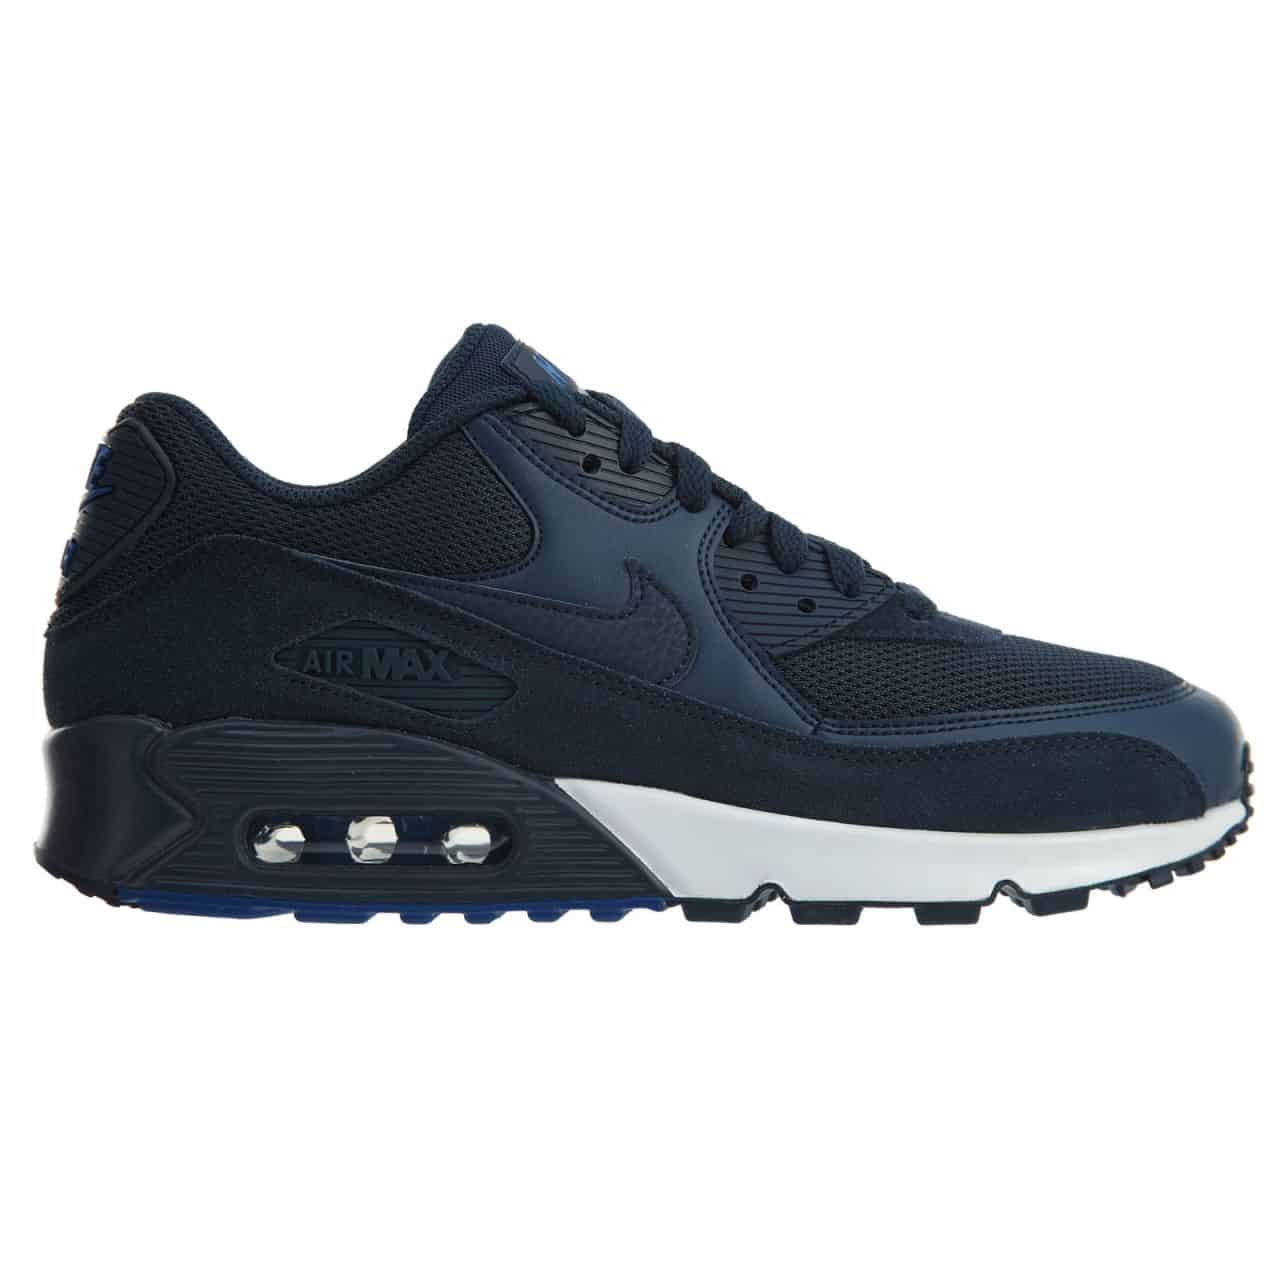 ADIDASI ORIGINALI NIKE AIR MAX 90 ESSENTIAL - 537384 422